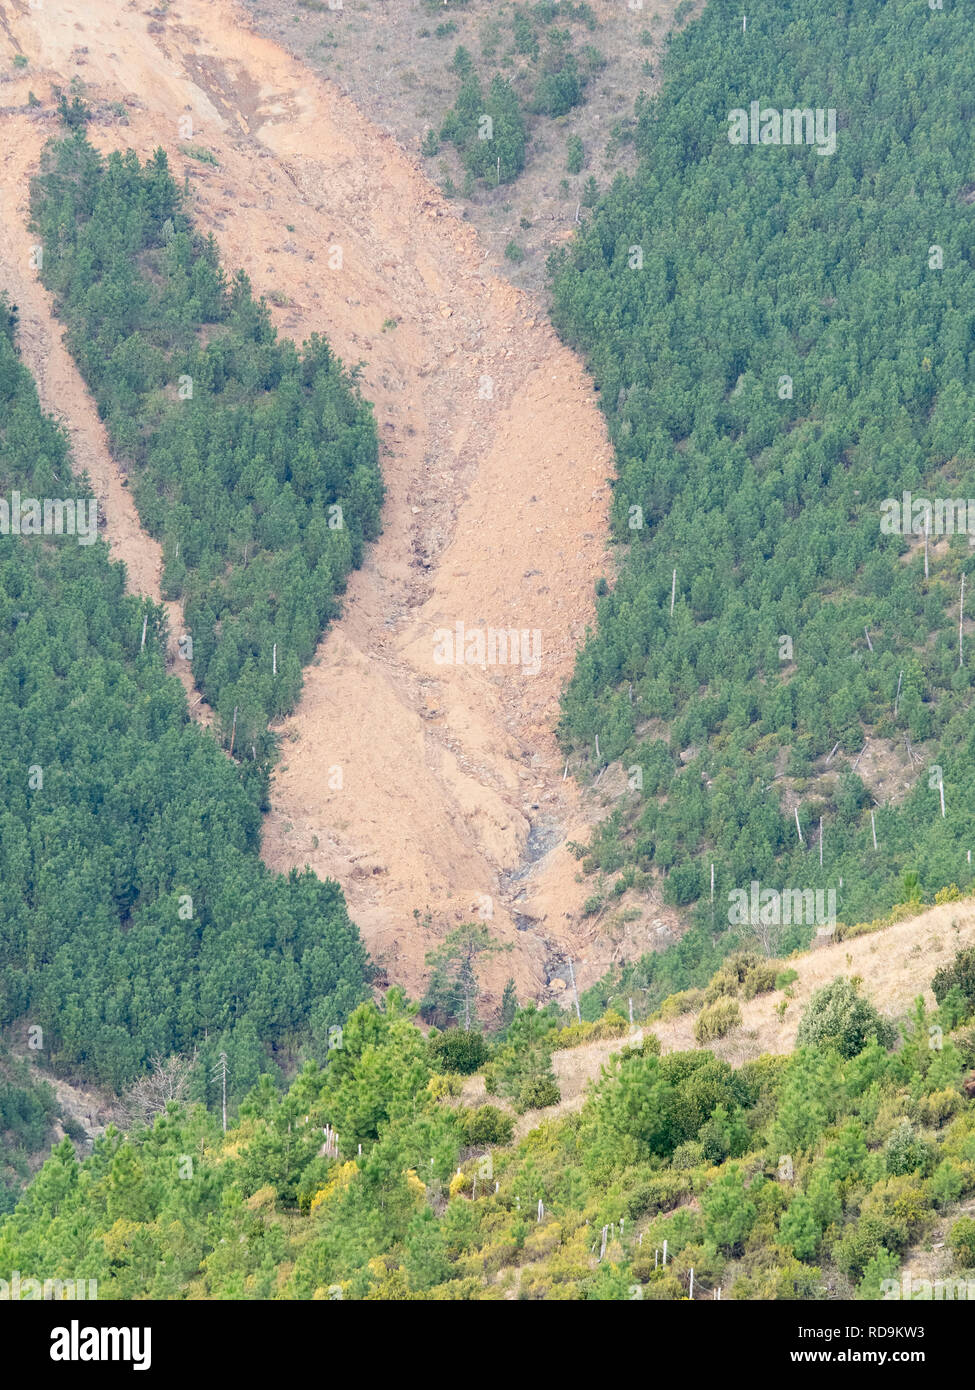 big landslide on the side of a mountain: soil erosion symbol of hydrogeological instability - Stock Image